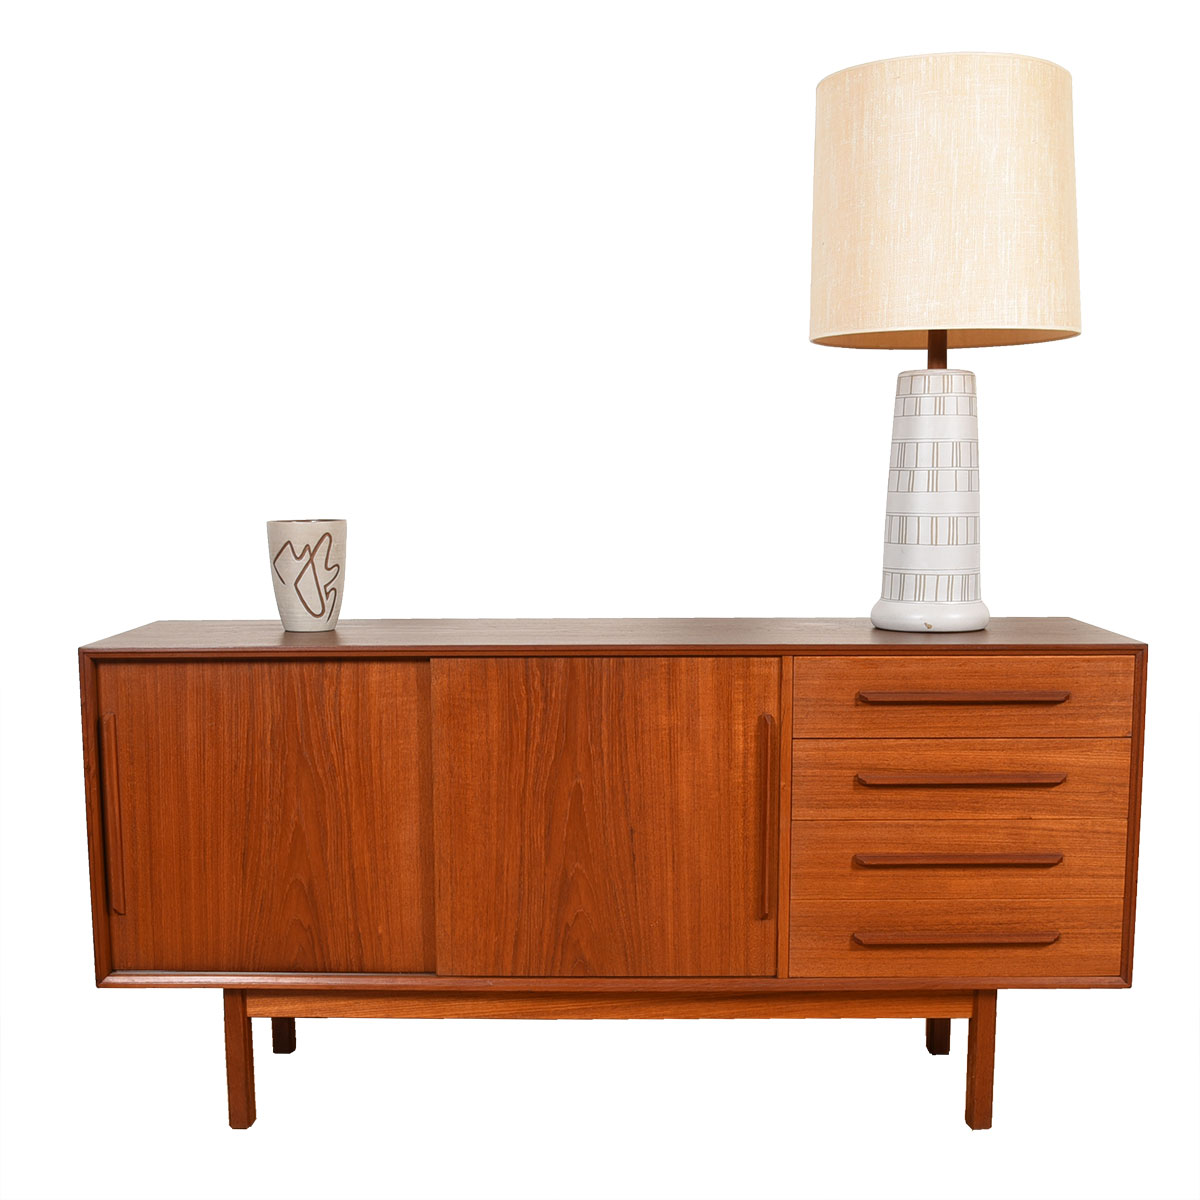 60″ Danish Modern Teak 2-Door / 4-Drawer Sideboard